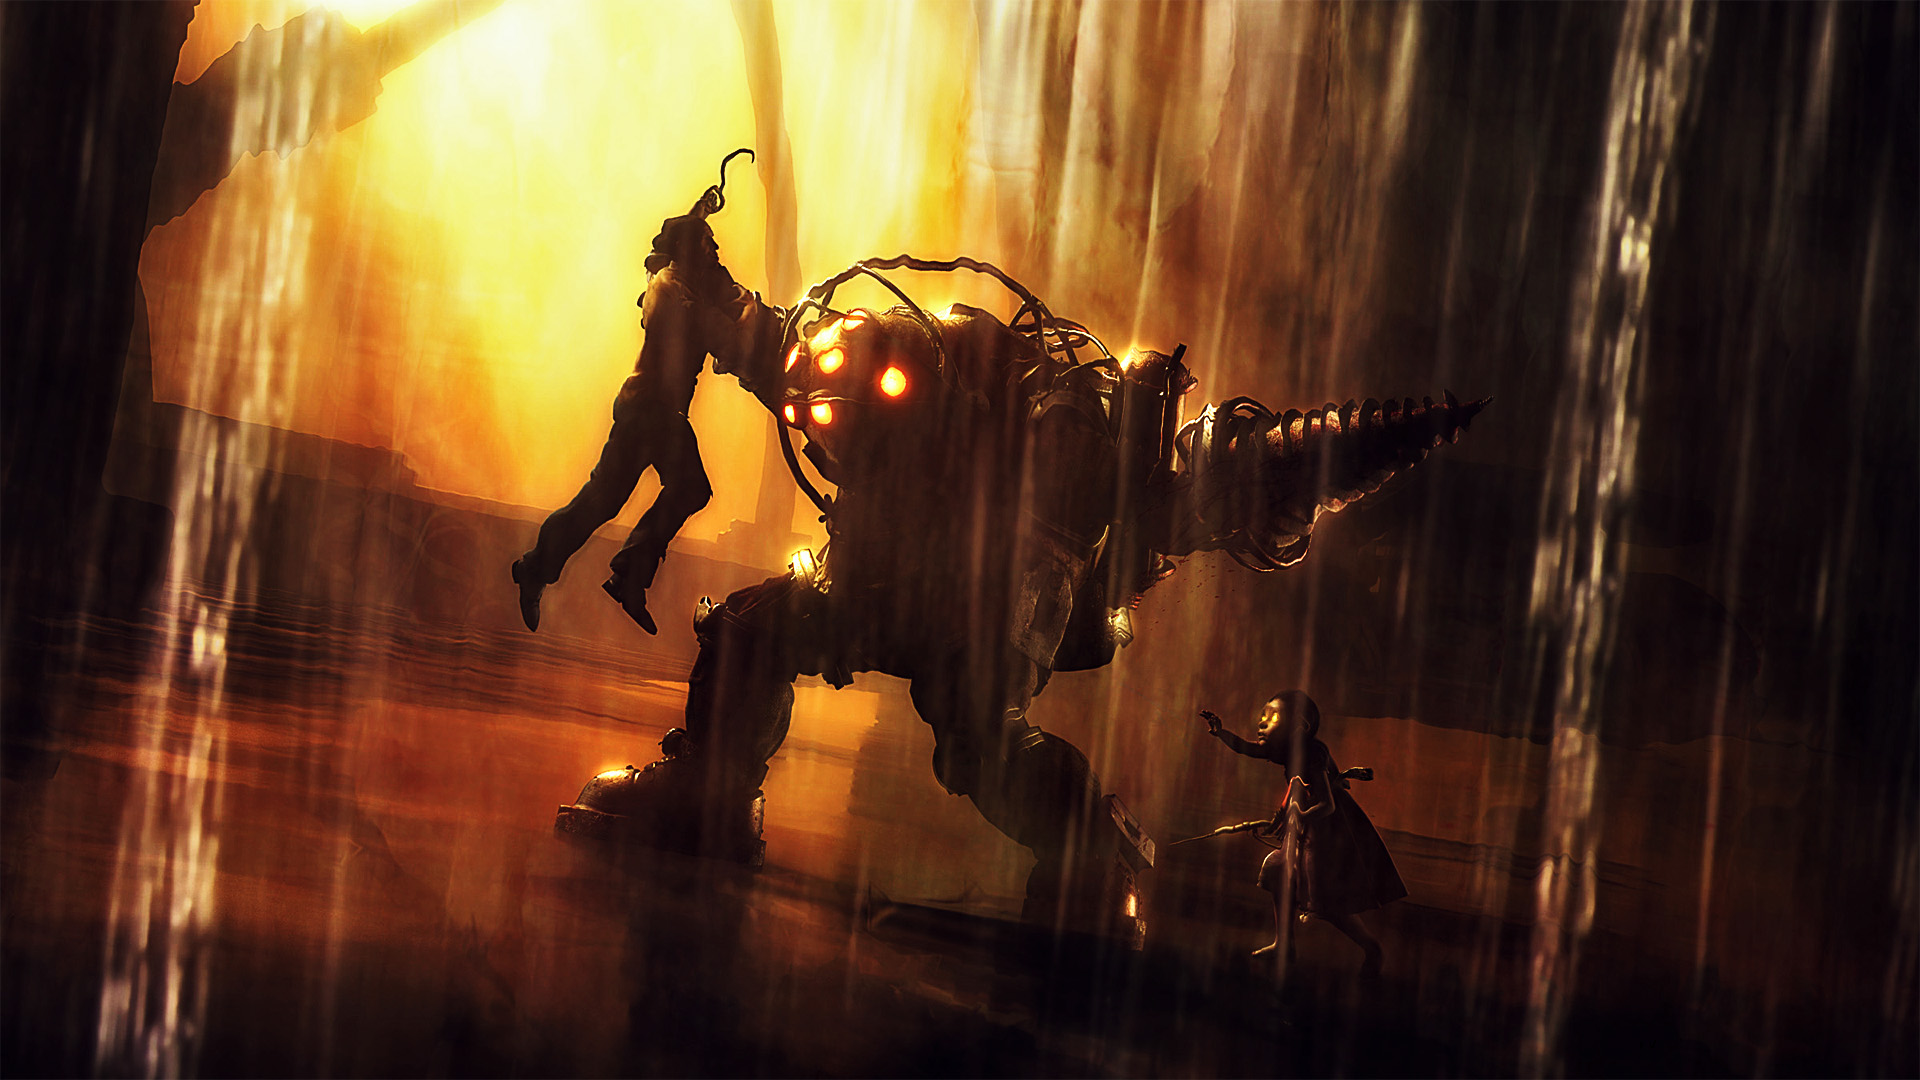 bioshock details launchbox games database